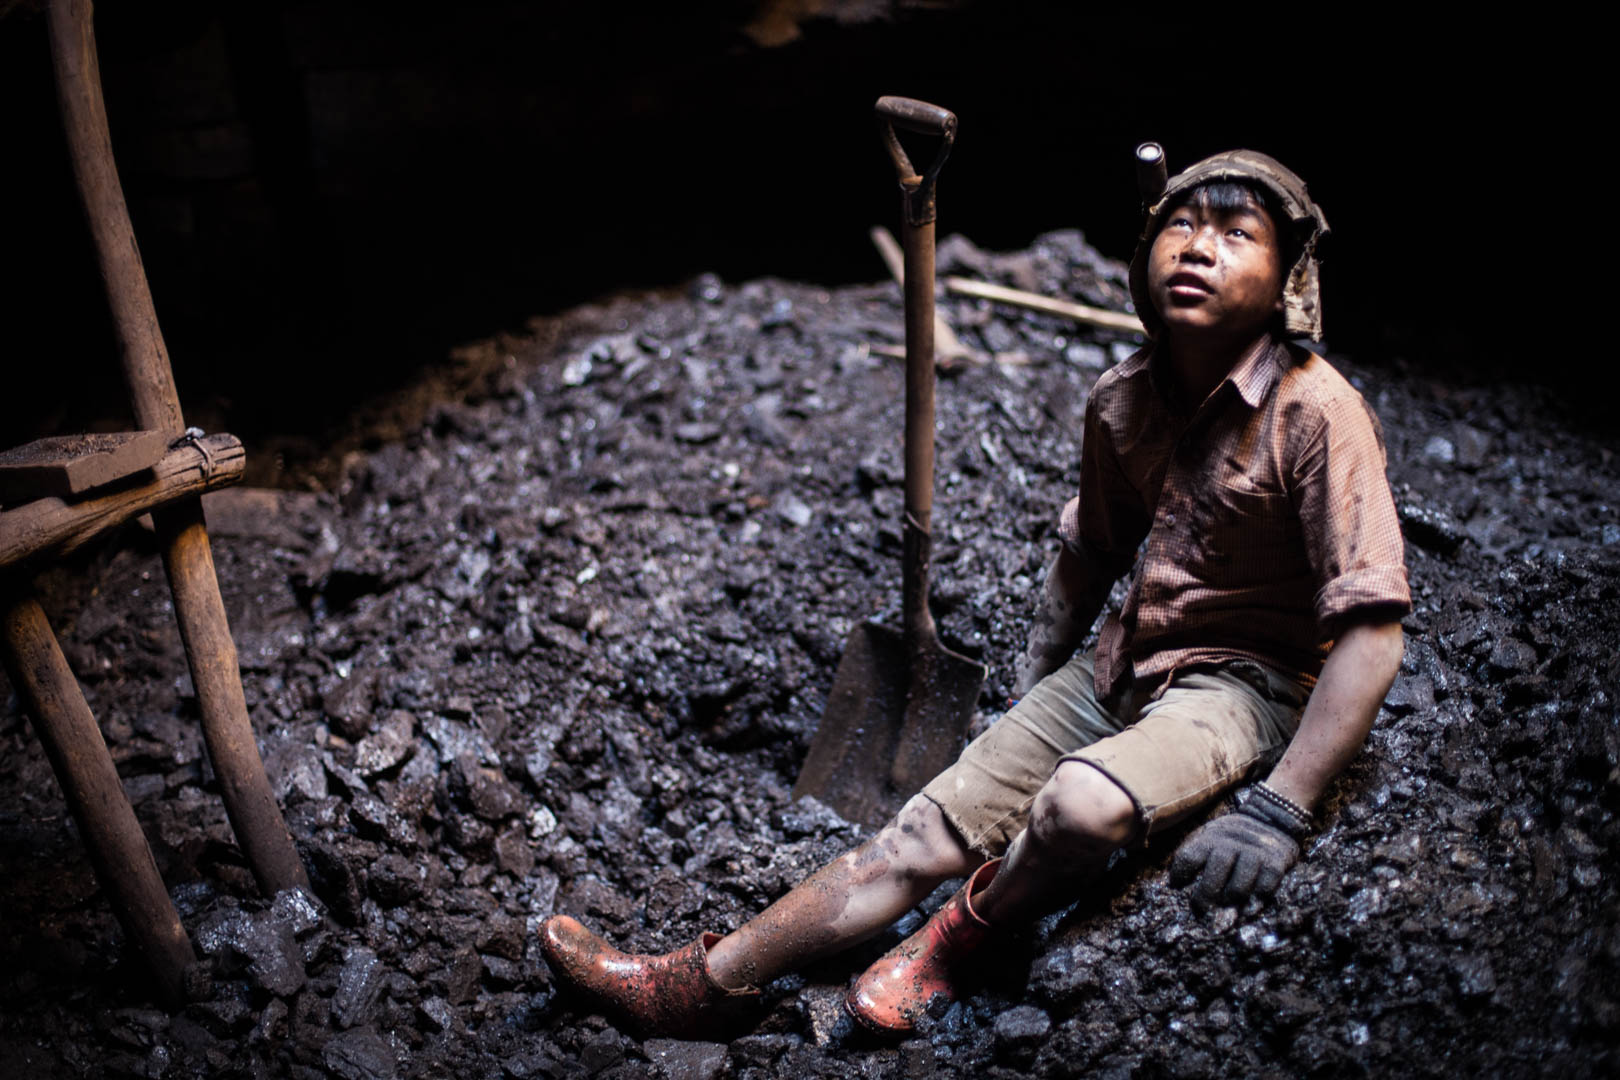 A boy from Nepal takes a break in an deep-shaft mine. His only protection equipment in the mines is a cap, gloves and rubber boots.